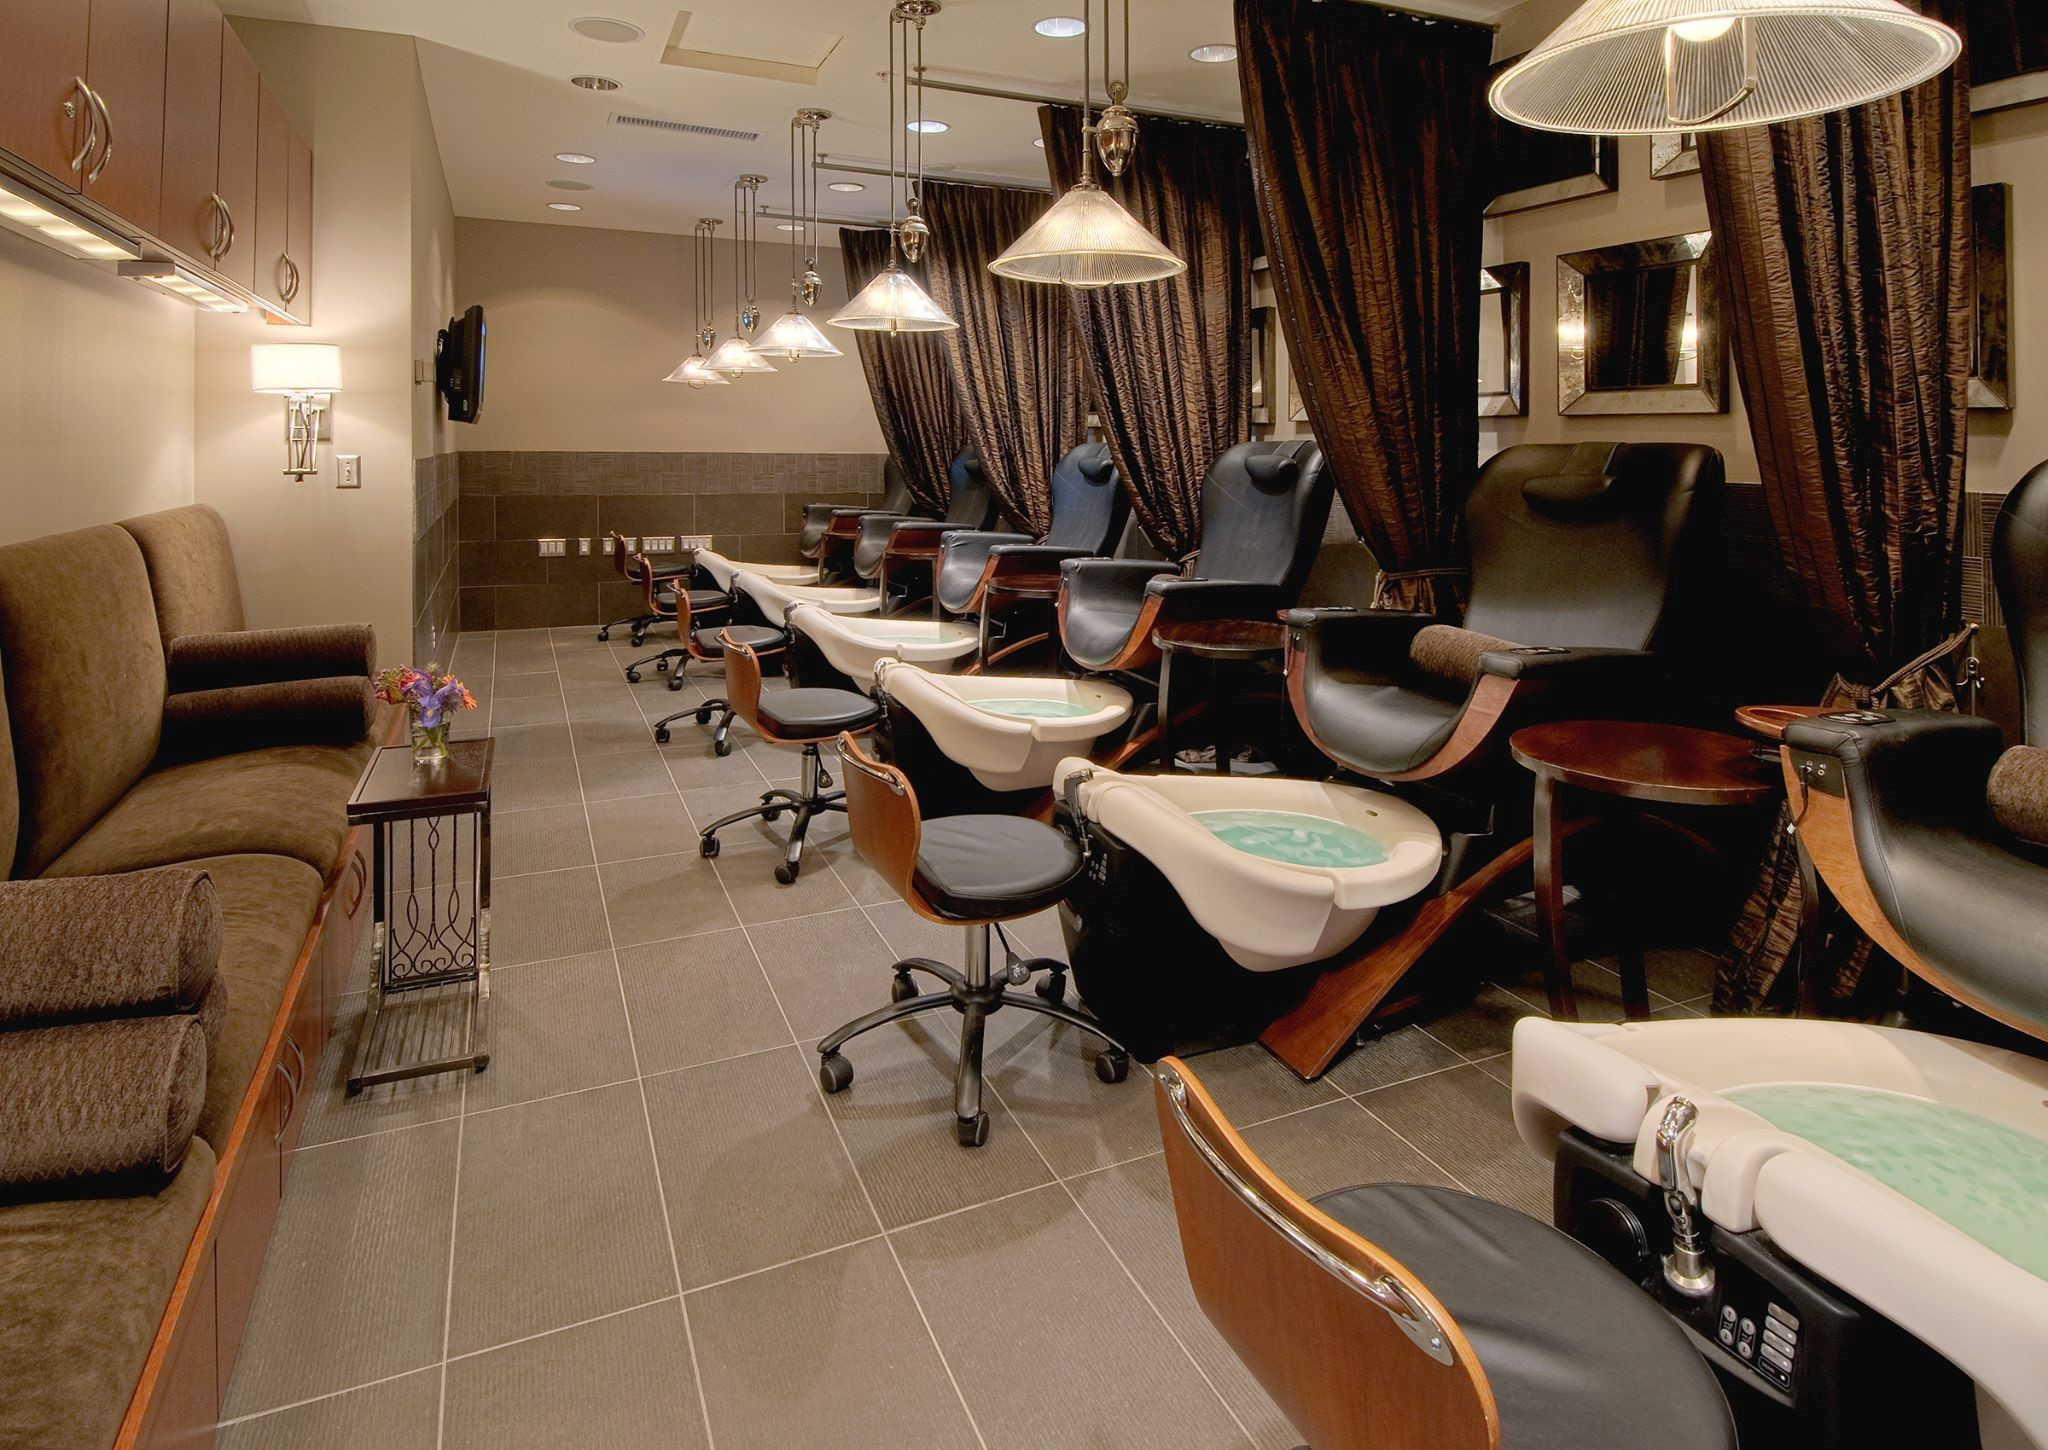 Pedicure Salon Top 10 Tips When Buying A Pedicure Chair Buy Rite Beauty